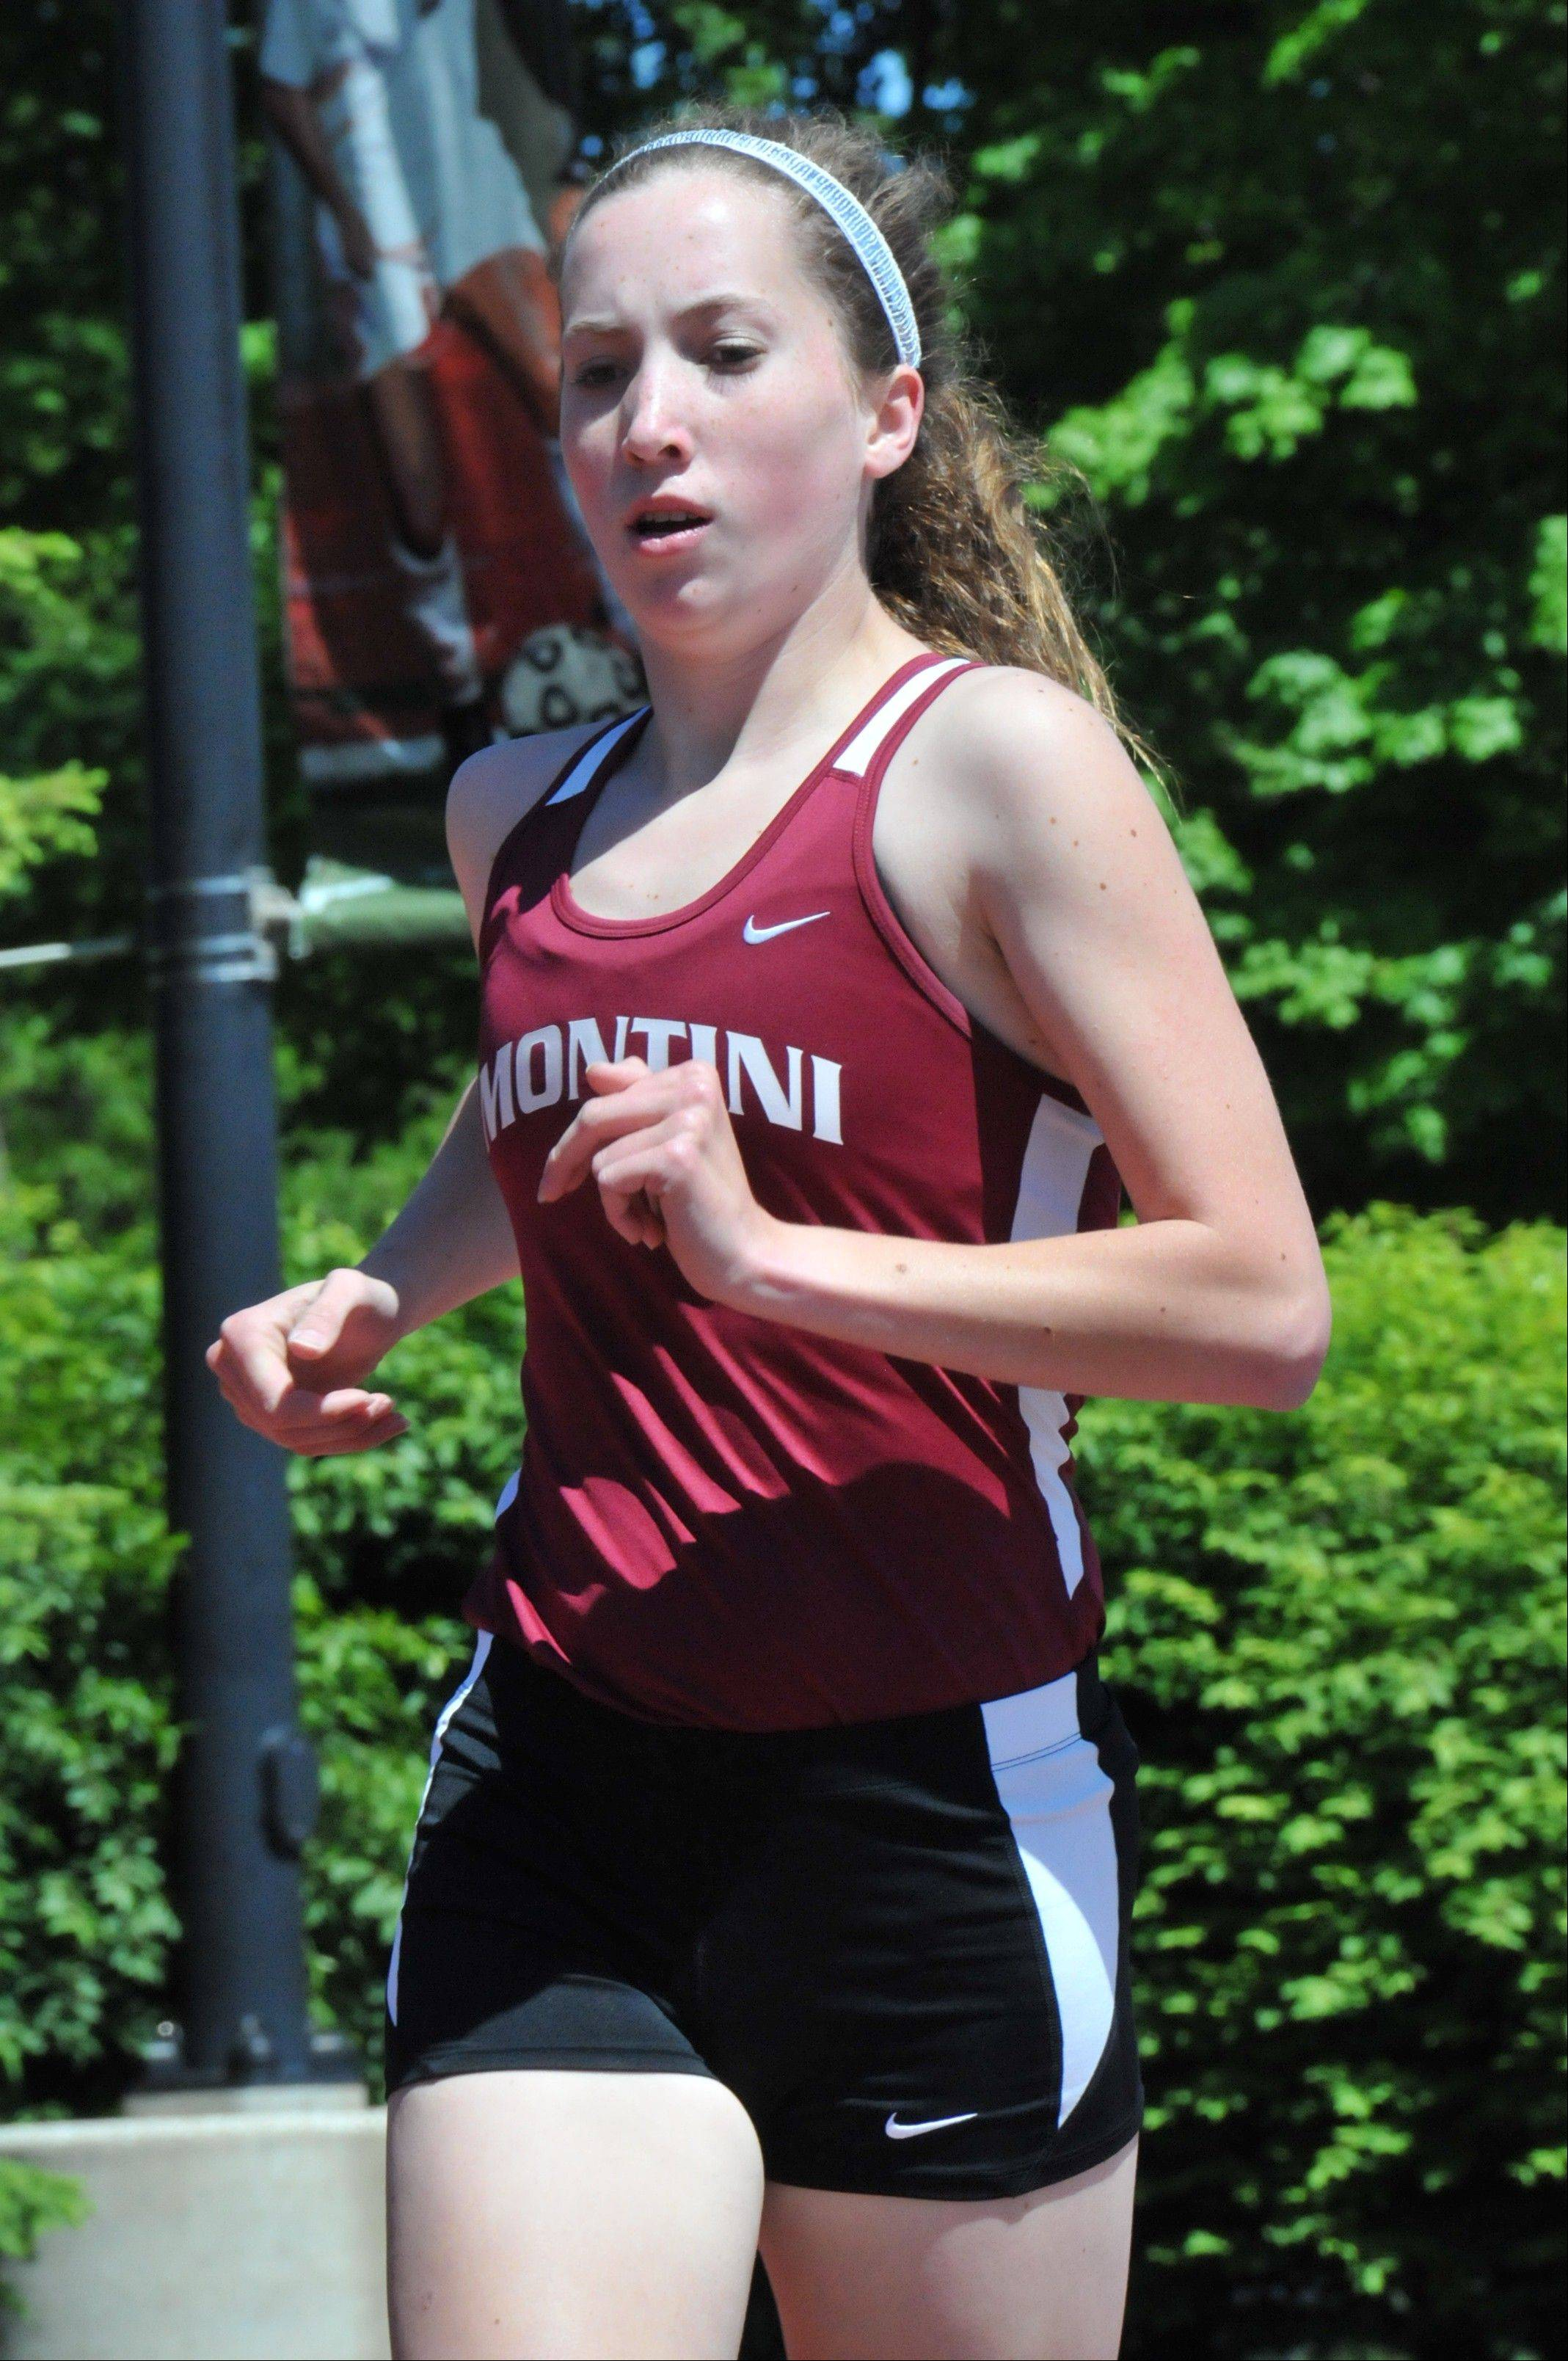 Montini senior distance runner Catherine Kitz placed 34th at last fall's Class 2A cross country meet and runs on the school track team.